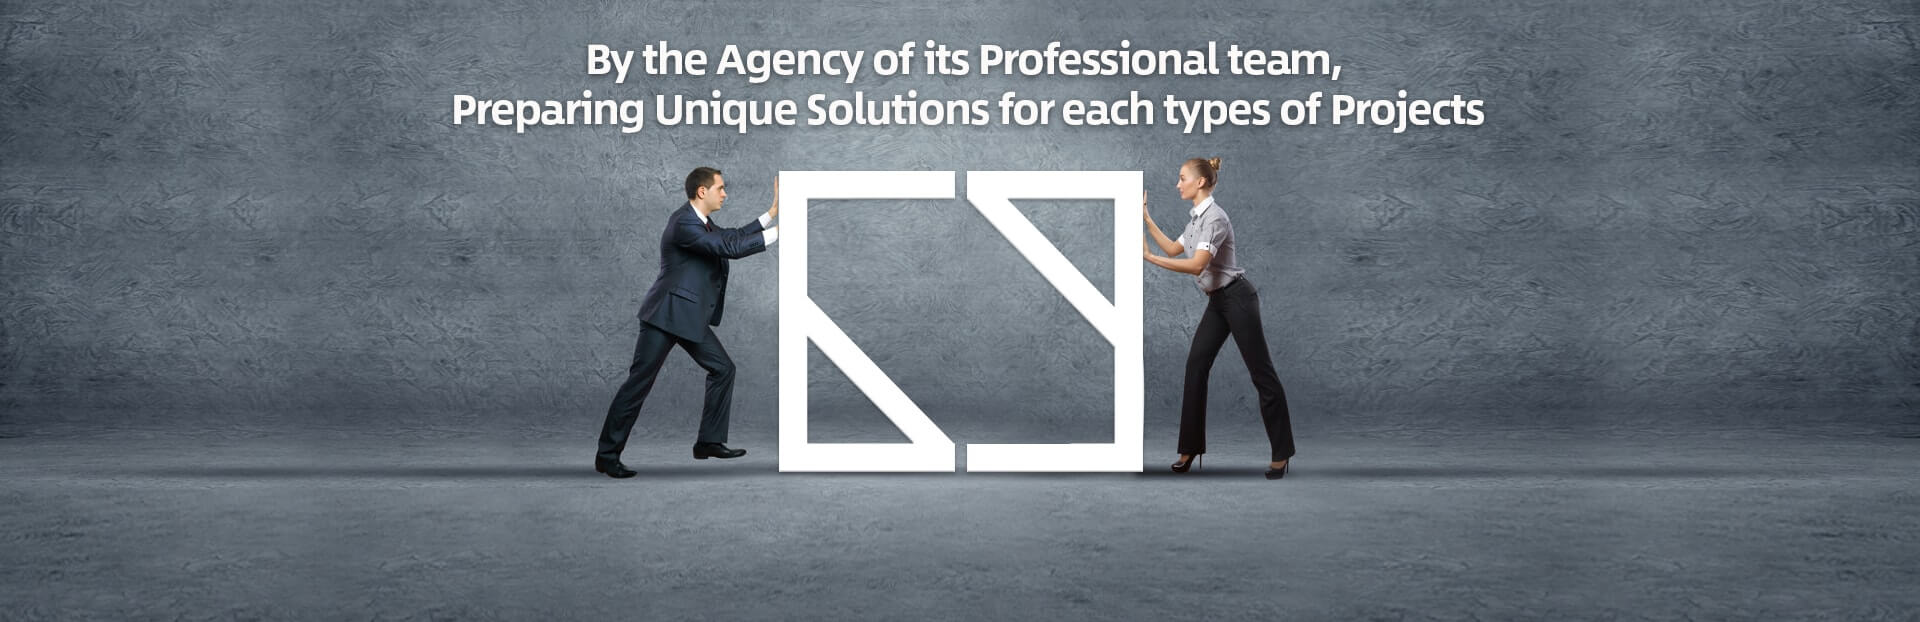 By the Agency of its Professional team, Preparing Unique Solutions for each types of Projects